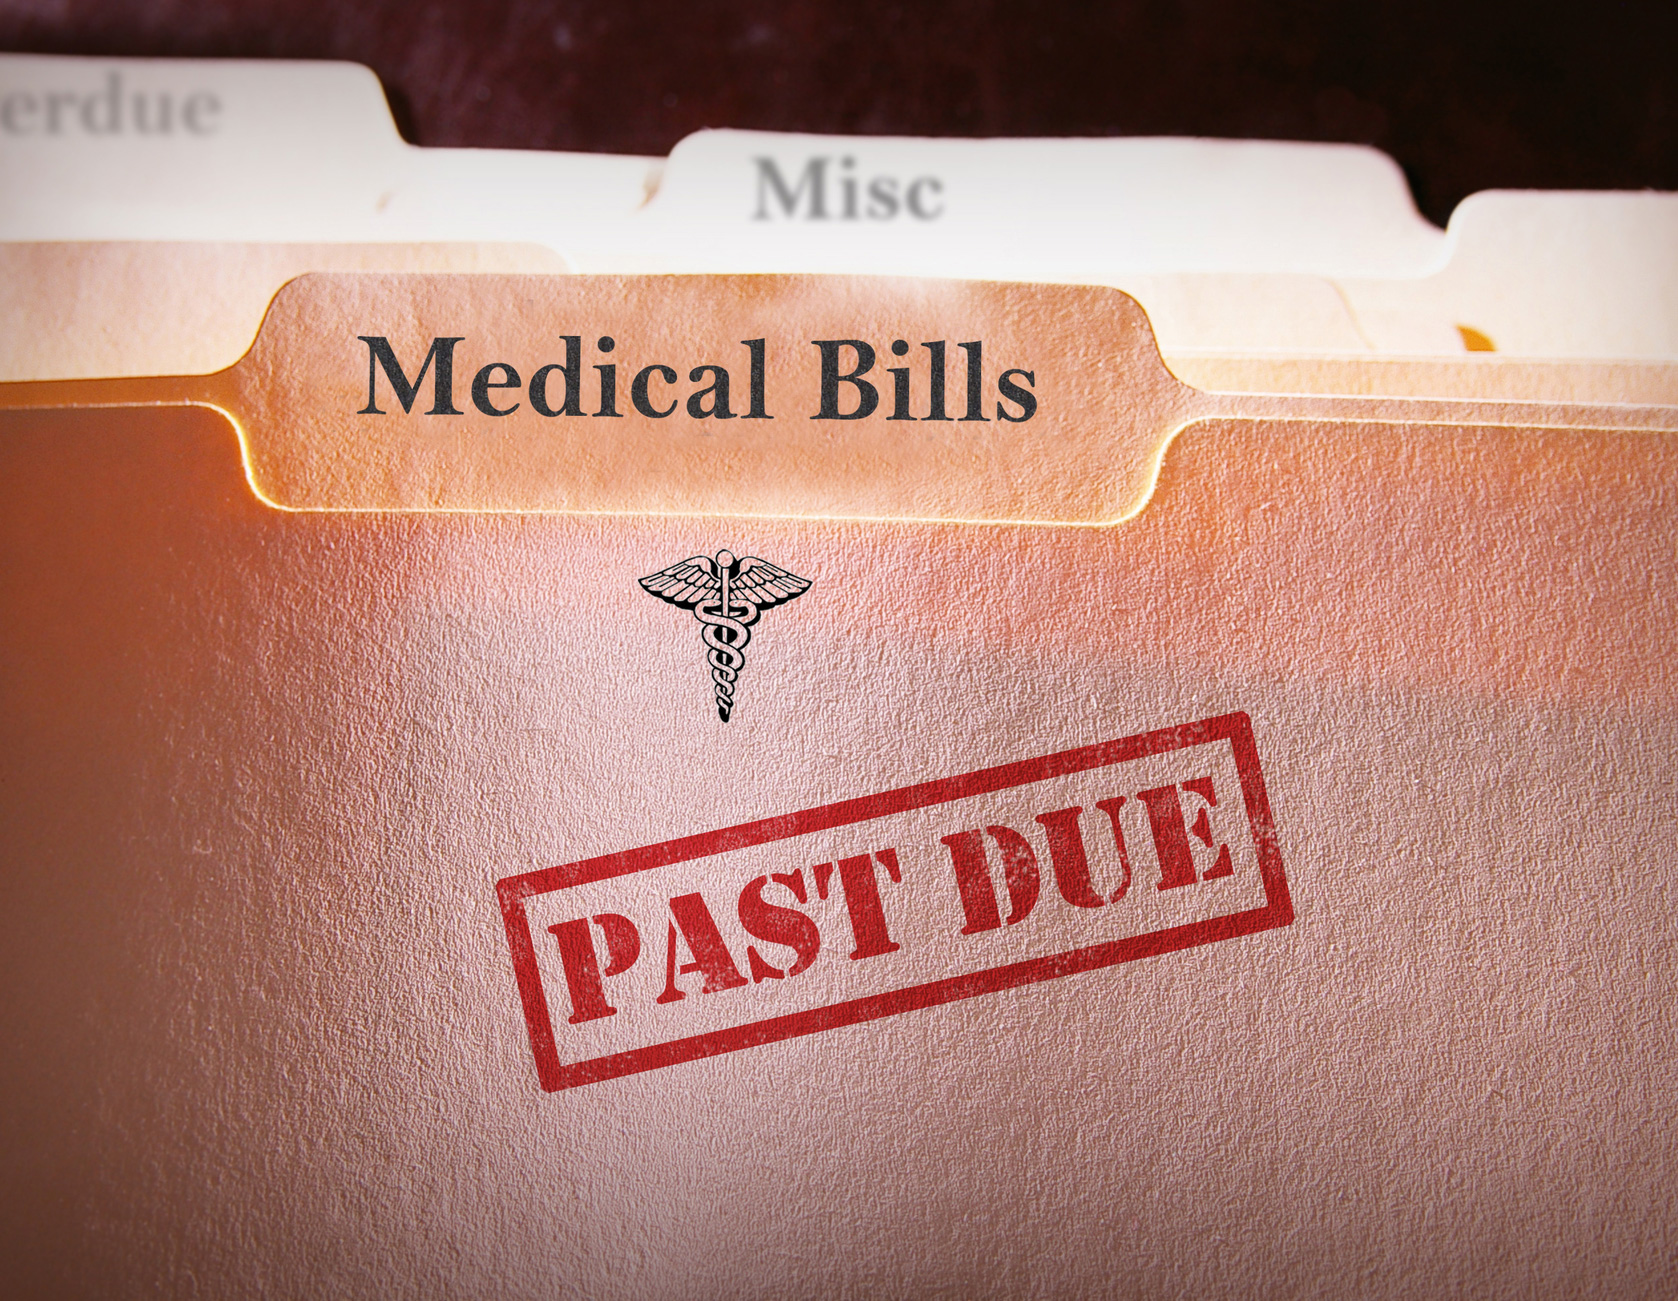 Discharge Medical Bills in bankruptcy with Santa Rosa bankruptcy attorney Brian Barta.